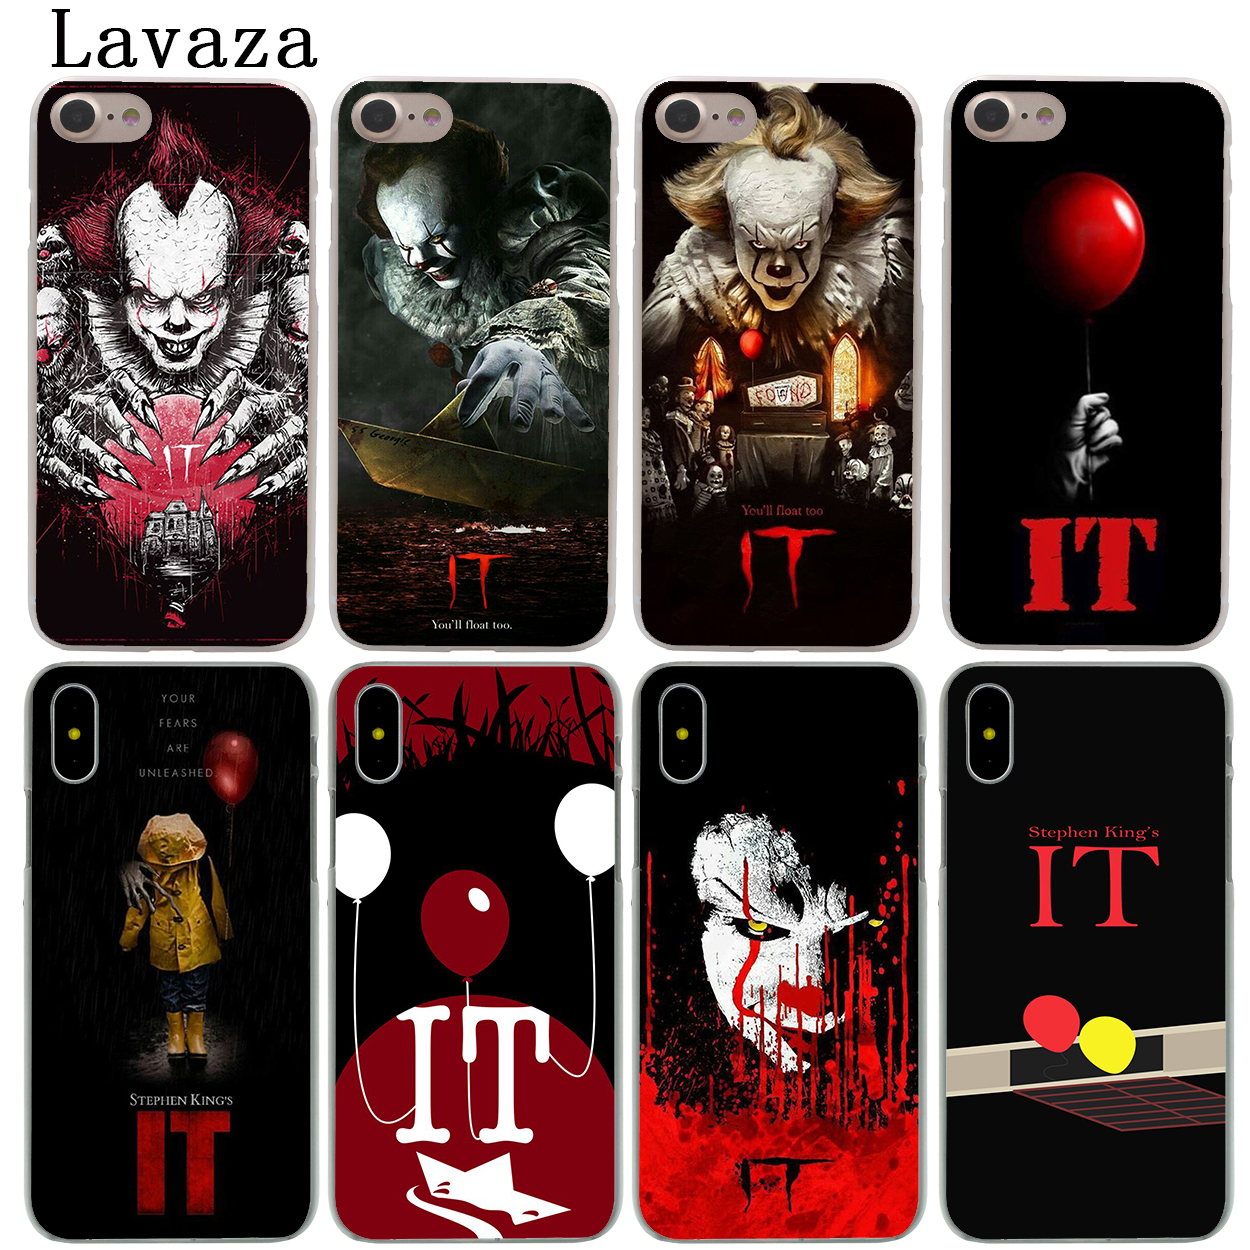 Lavaza Stephen Kings It Hard Fashion Phone Shell Case for Apple iPhone X 10 8 7 6 6S Plus 5 5S SE 5C 4 4S Coque Cover